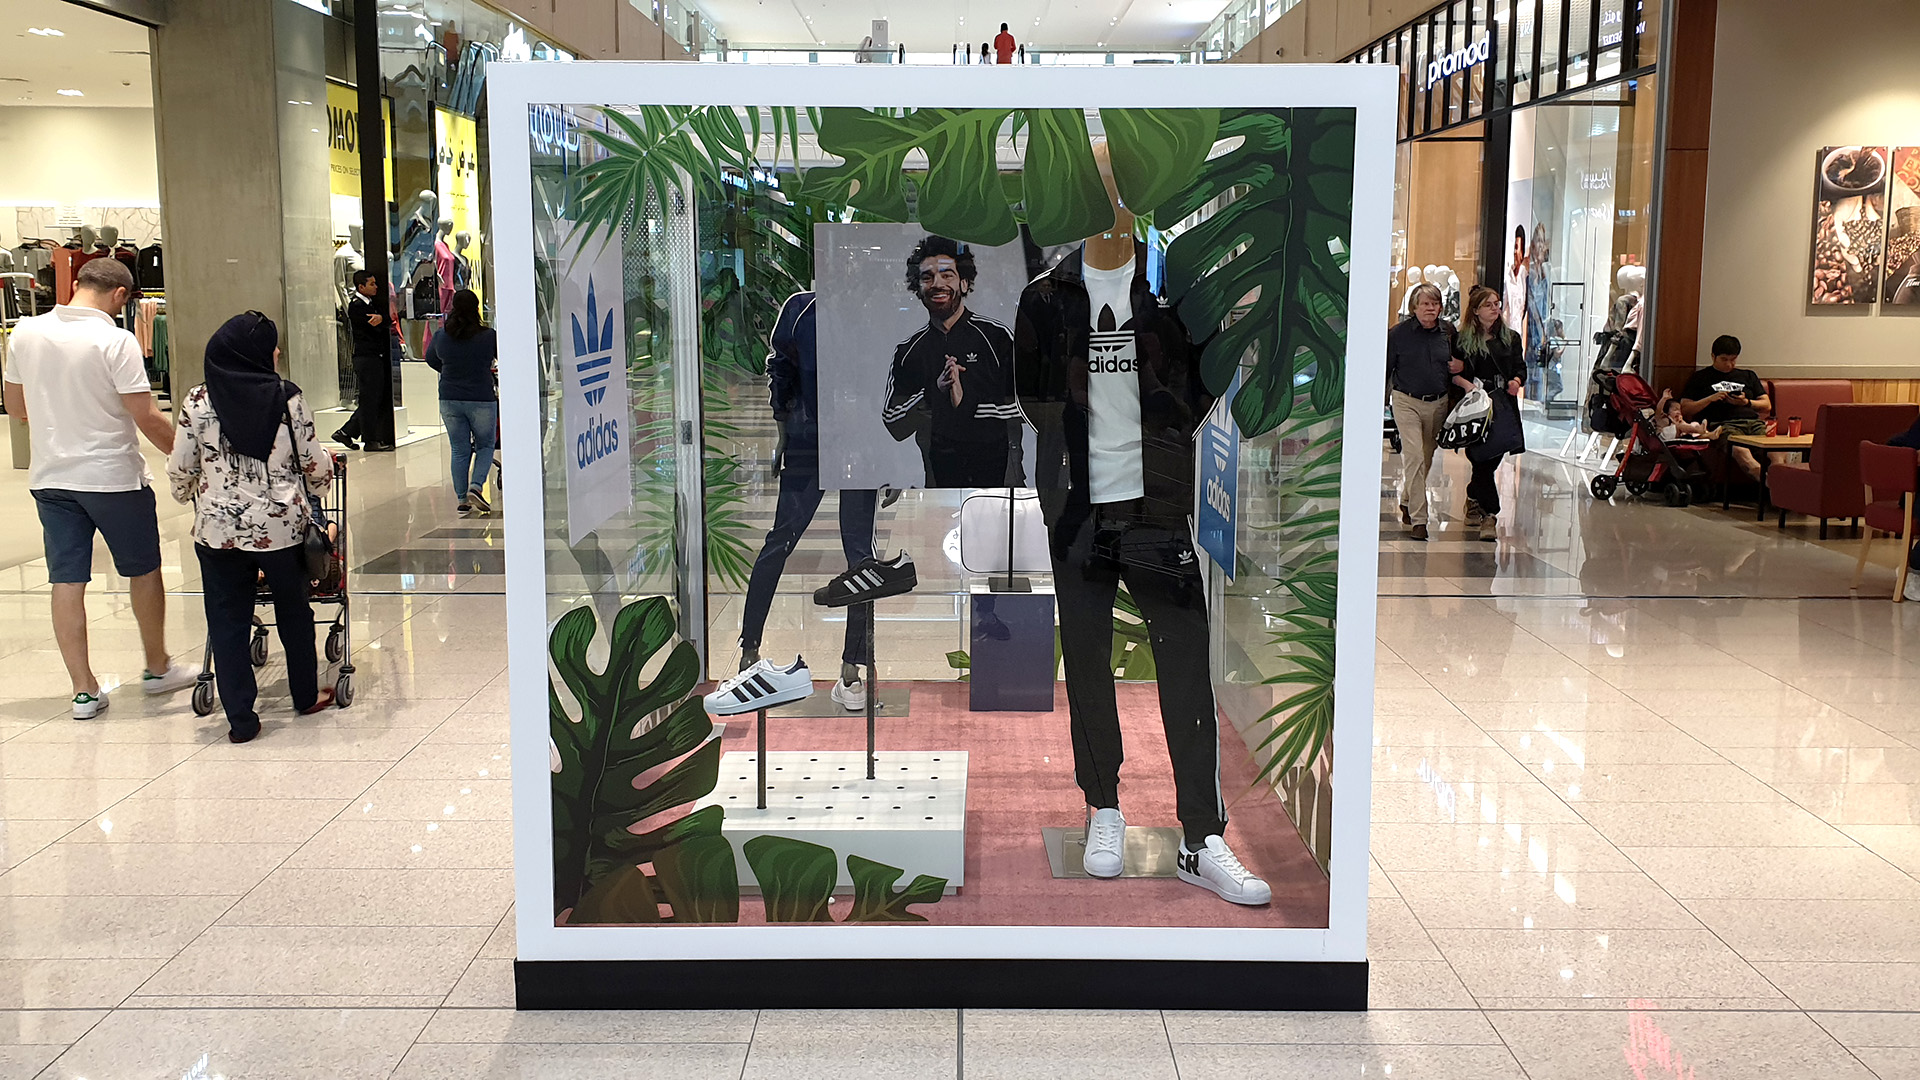 Custom fabricated Window Display Boxes for Doha Festival City made from Steel and Glass by ME Visual. This example features an Adidas campaign including Mohamed Salah